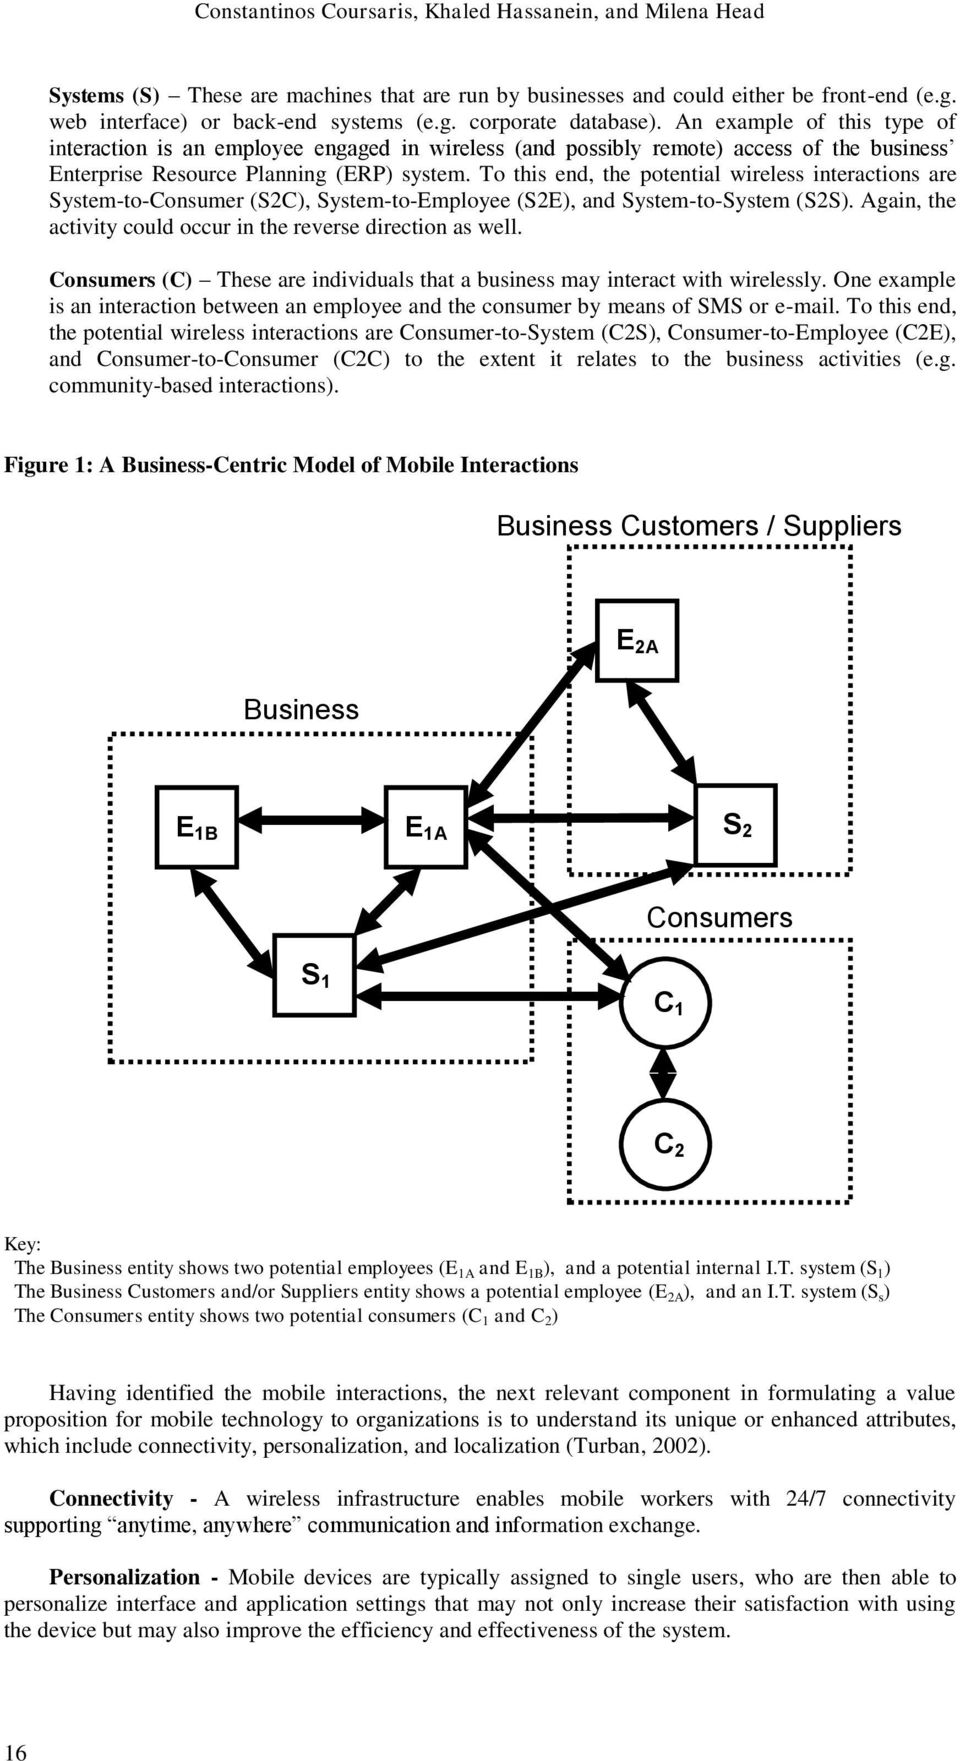 To this end, the potential wireless interactions are System-to-Consumer (S2C), System-to-Employee (S2E), and System-to-System (S2S). Again, the activity could occur in the reverse direction as well.